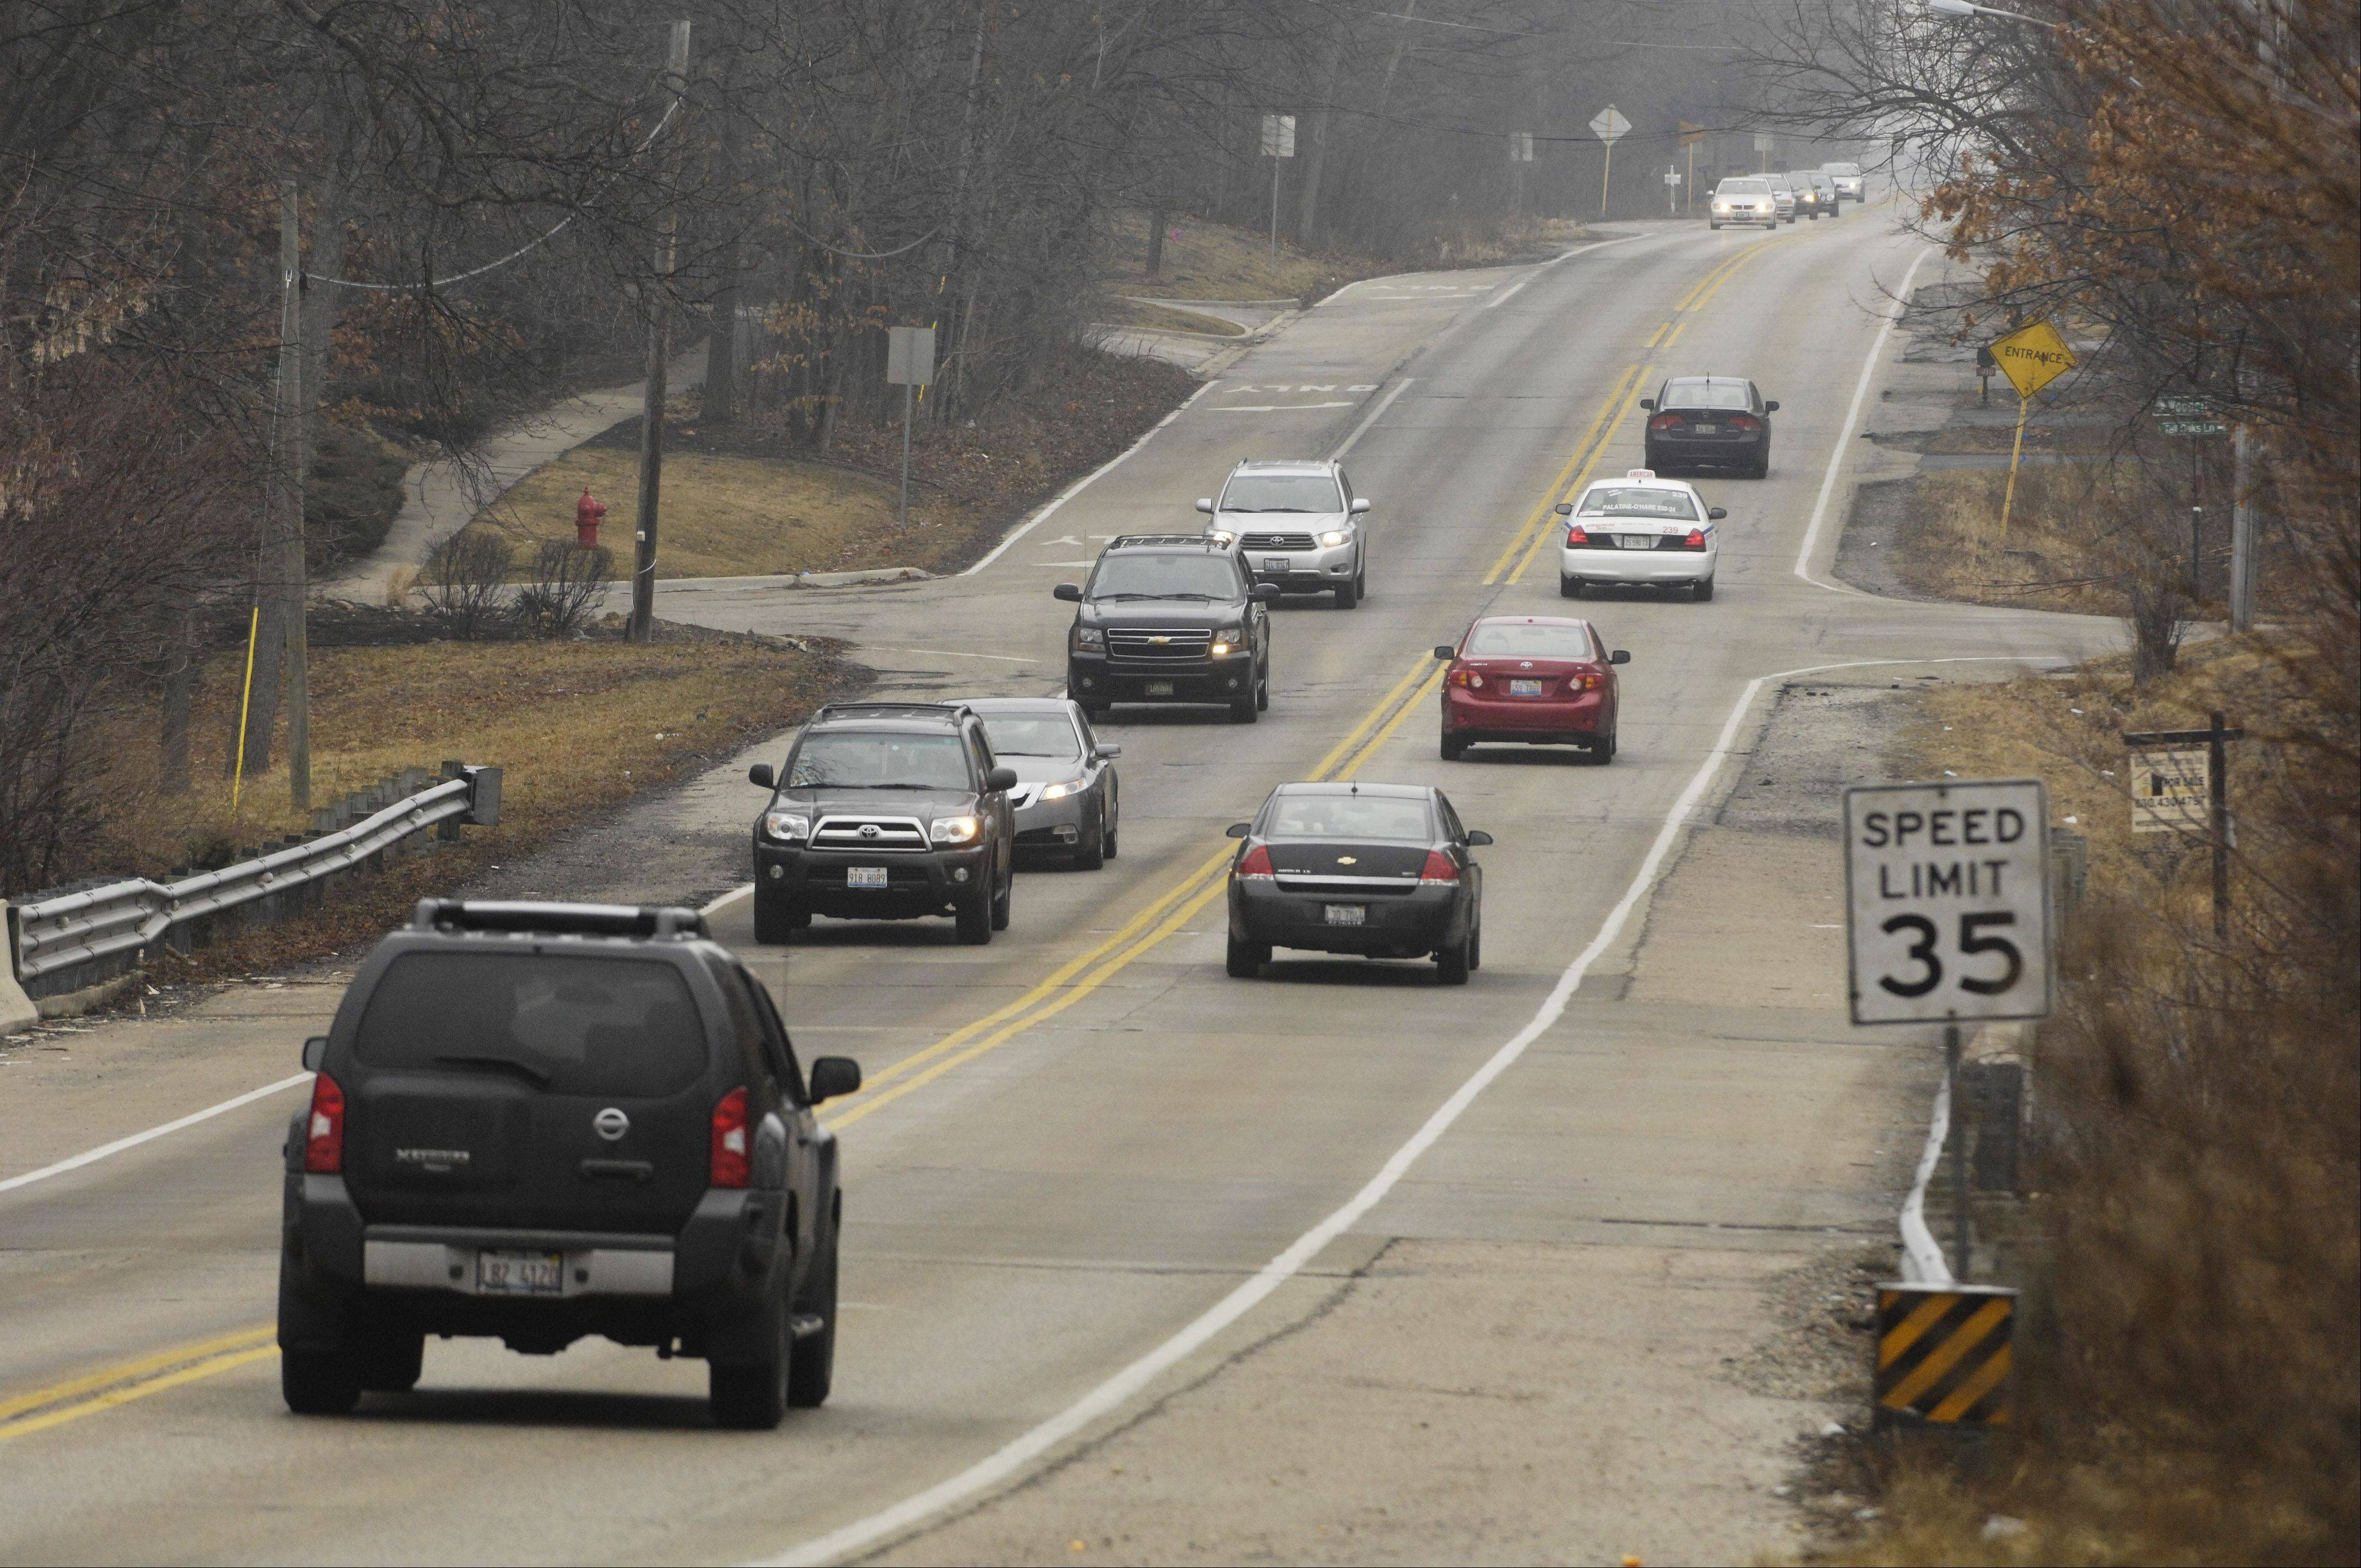 Rolling Meadows and the Illinois Department of Transportation are discussing plans for expanding Meacham Road between Emerson Avenue and Algonquin Road, but the two sides differ over how many new lanes should be added.